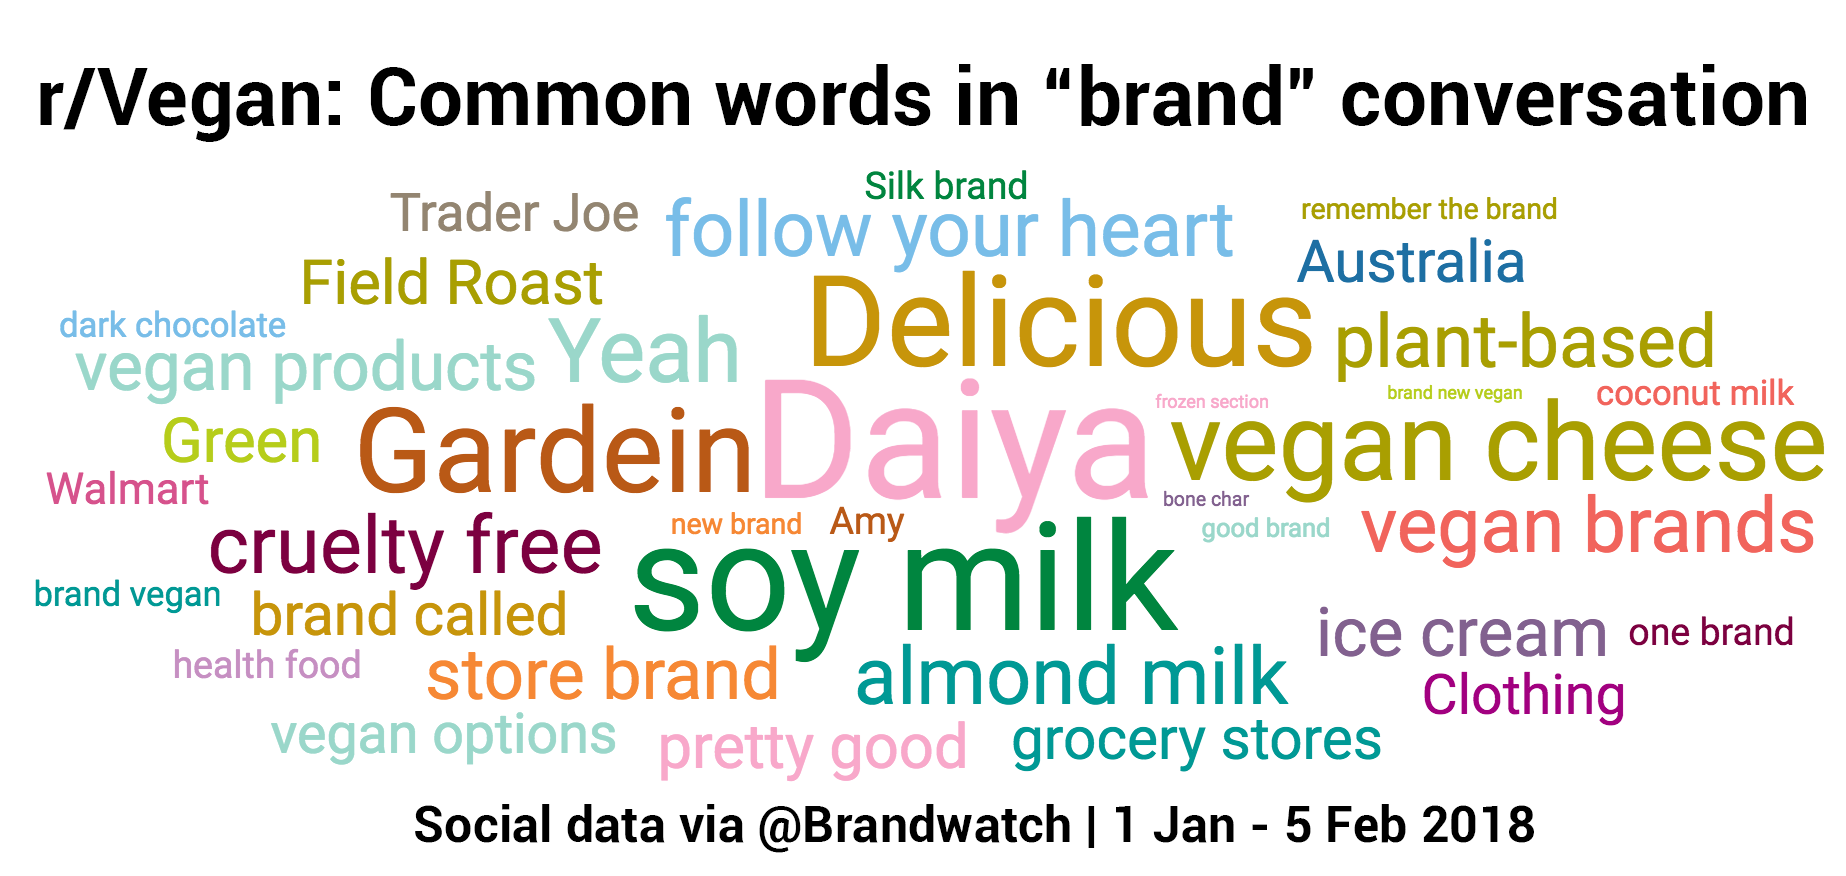 Topic cloud shows brands discussed in r/vegan